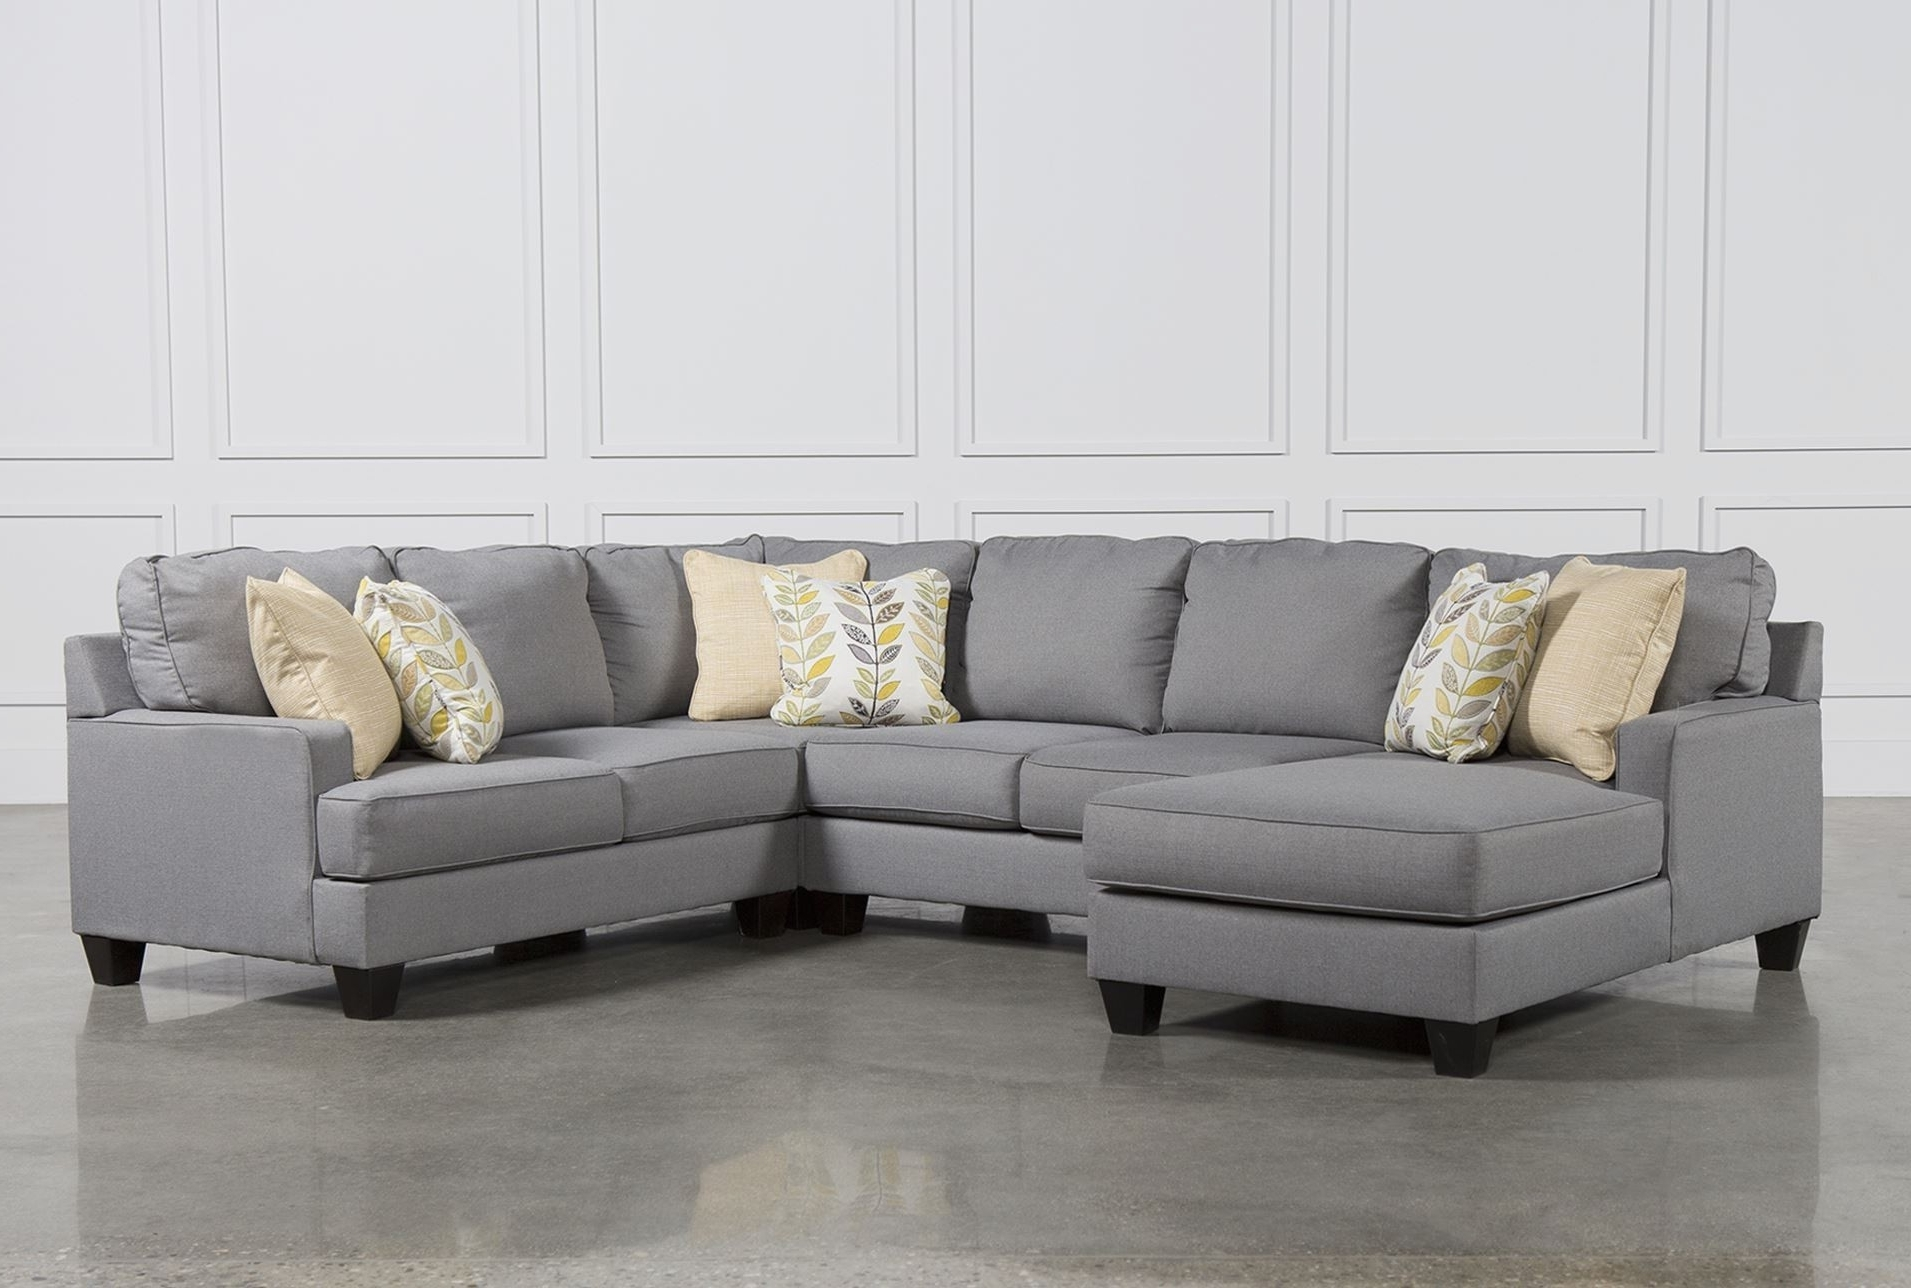 Living Spaces Sectional Sofas Throughout Recent Living Spaces Sectional Sofas Inspirational Sofa Alder 4 Piece (View 7 of 15)